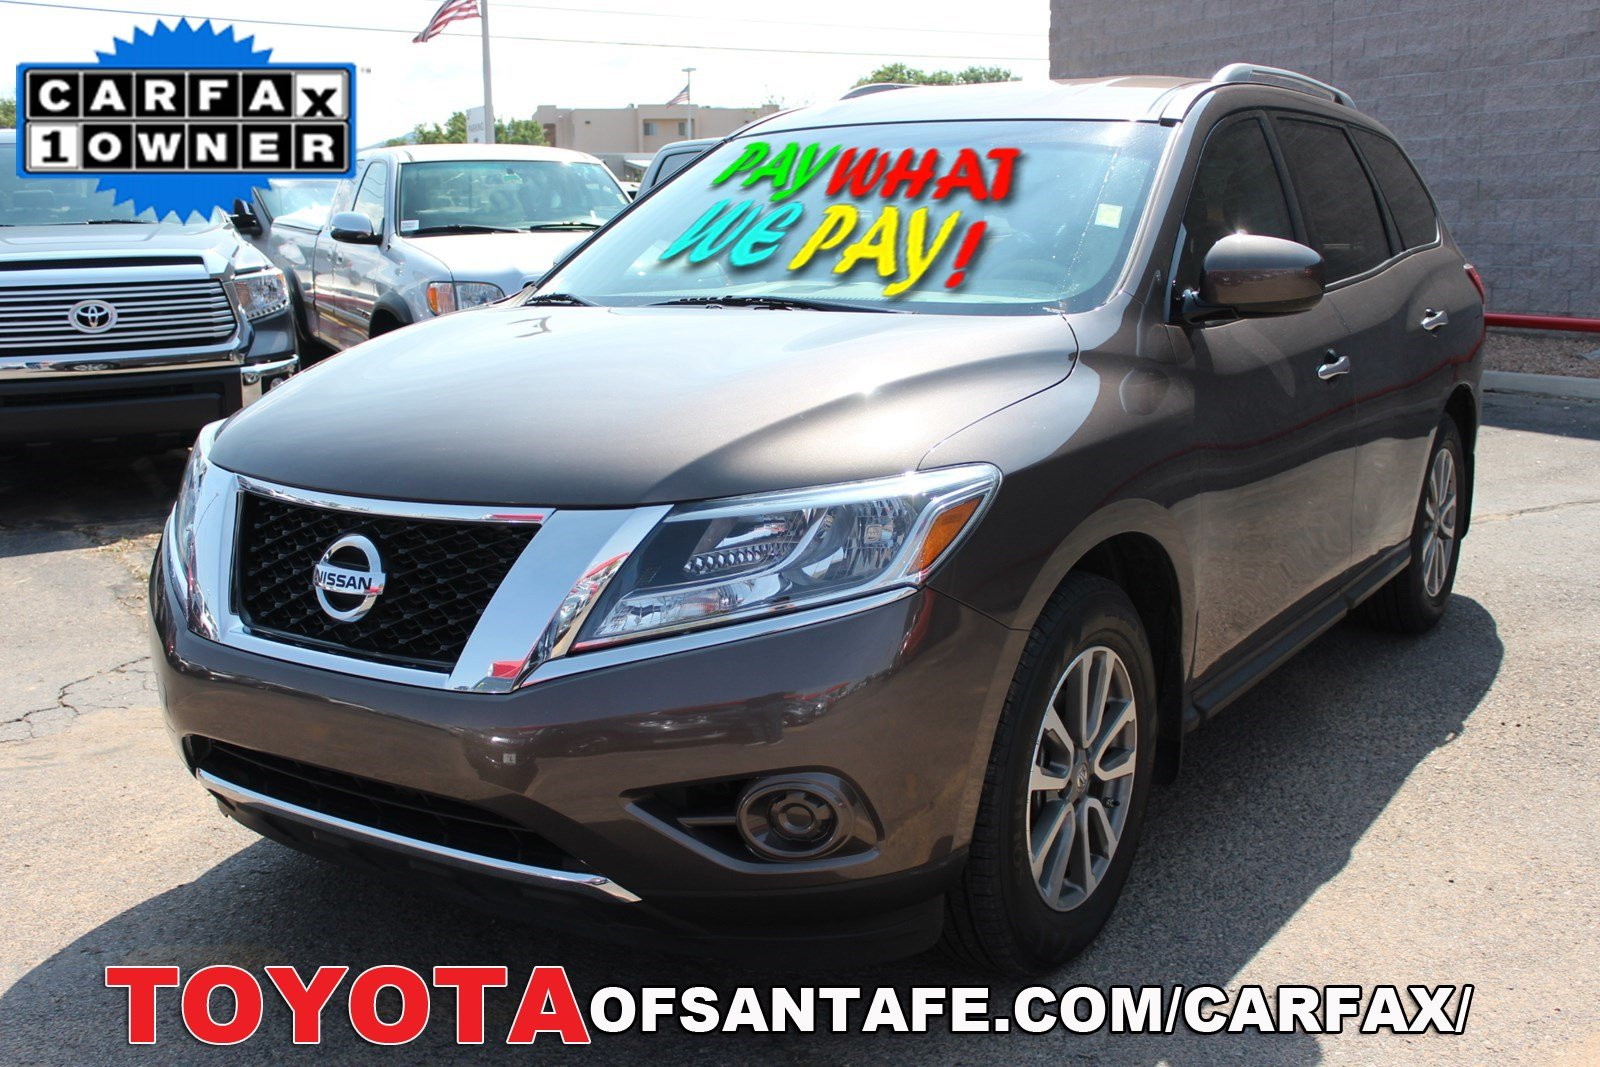 Pre-Owned 2015 Nissan Pathfinder S FWD Sport Utility Vehicle